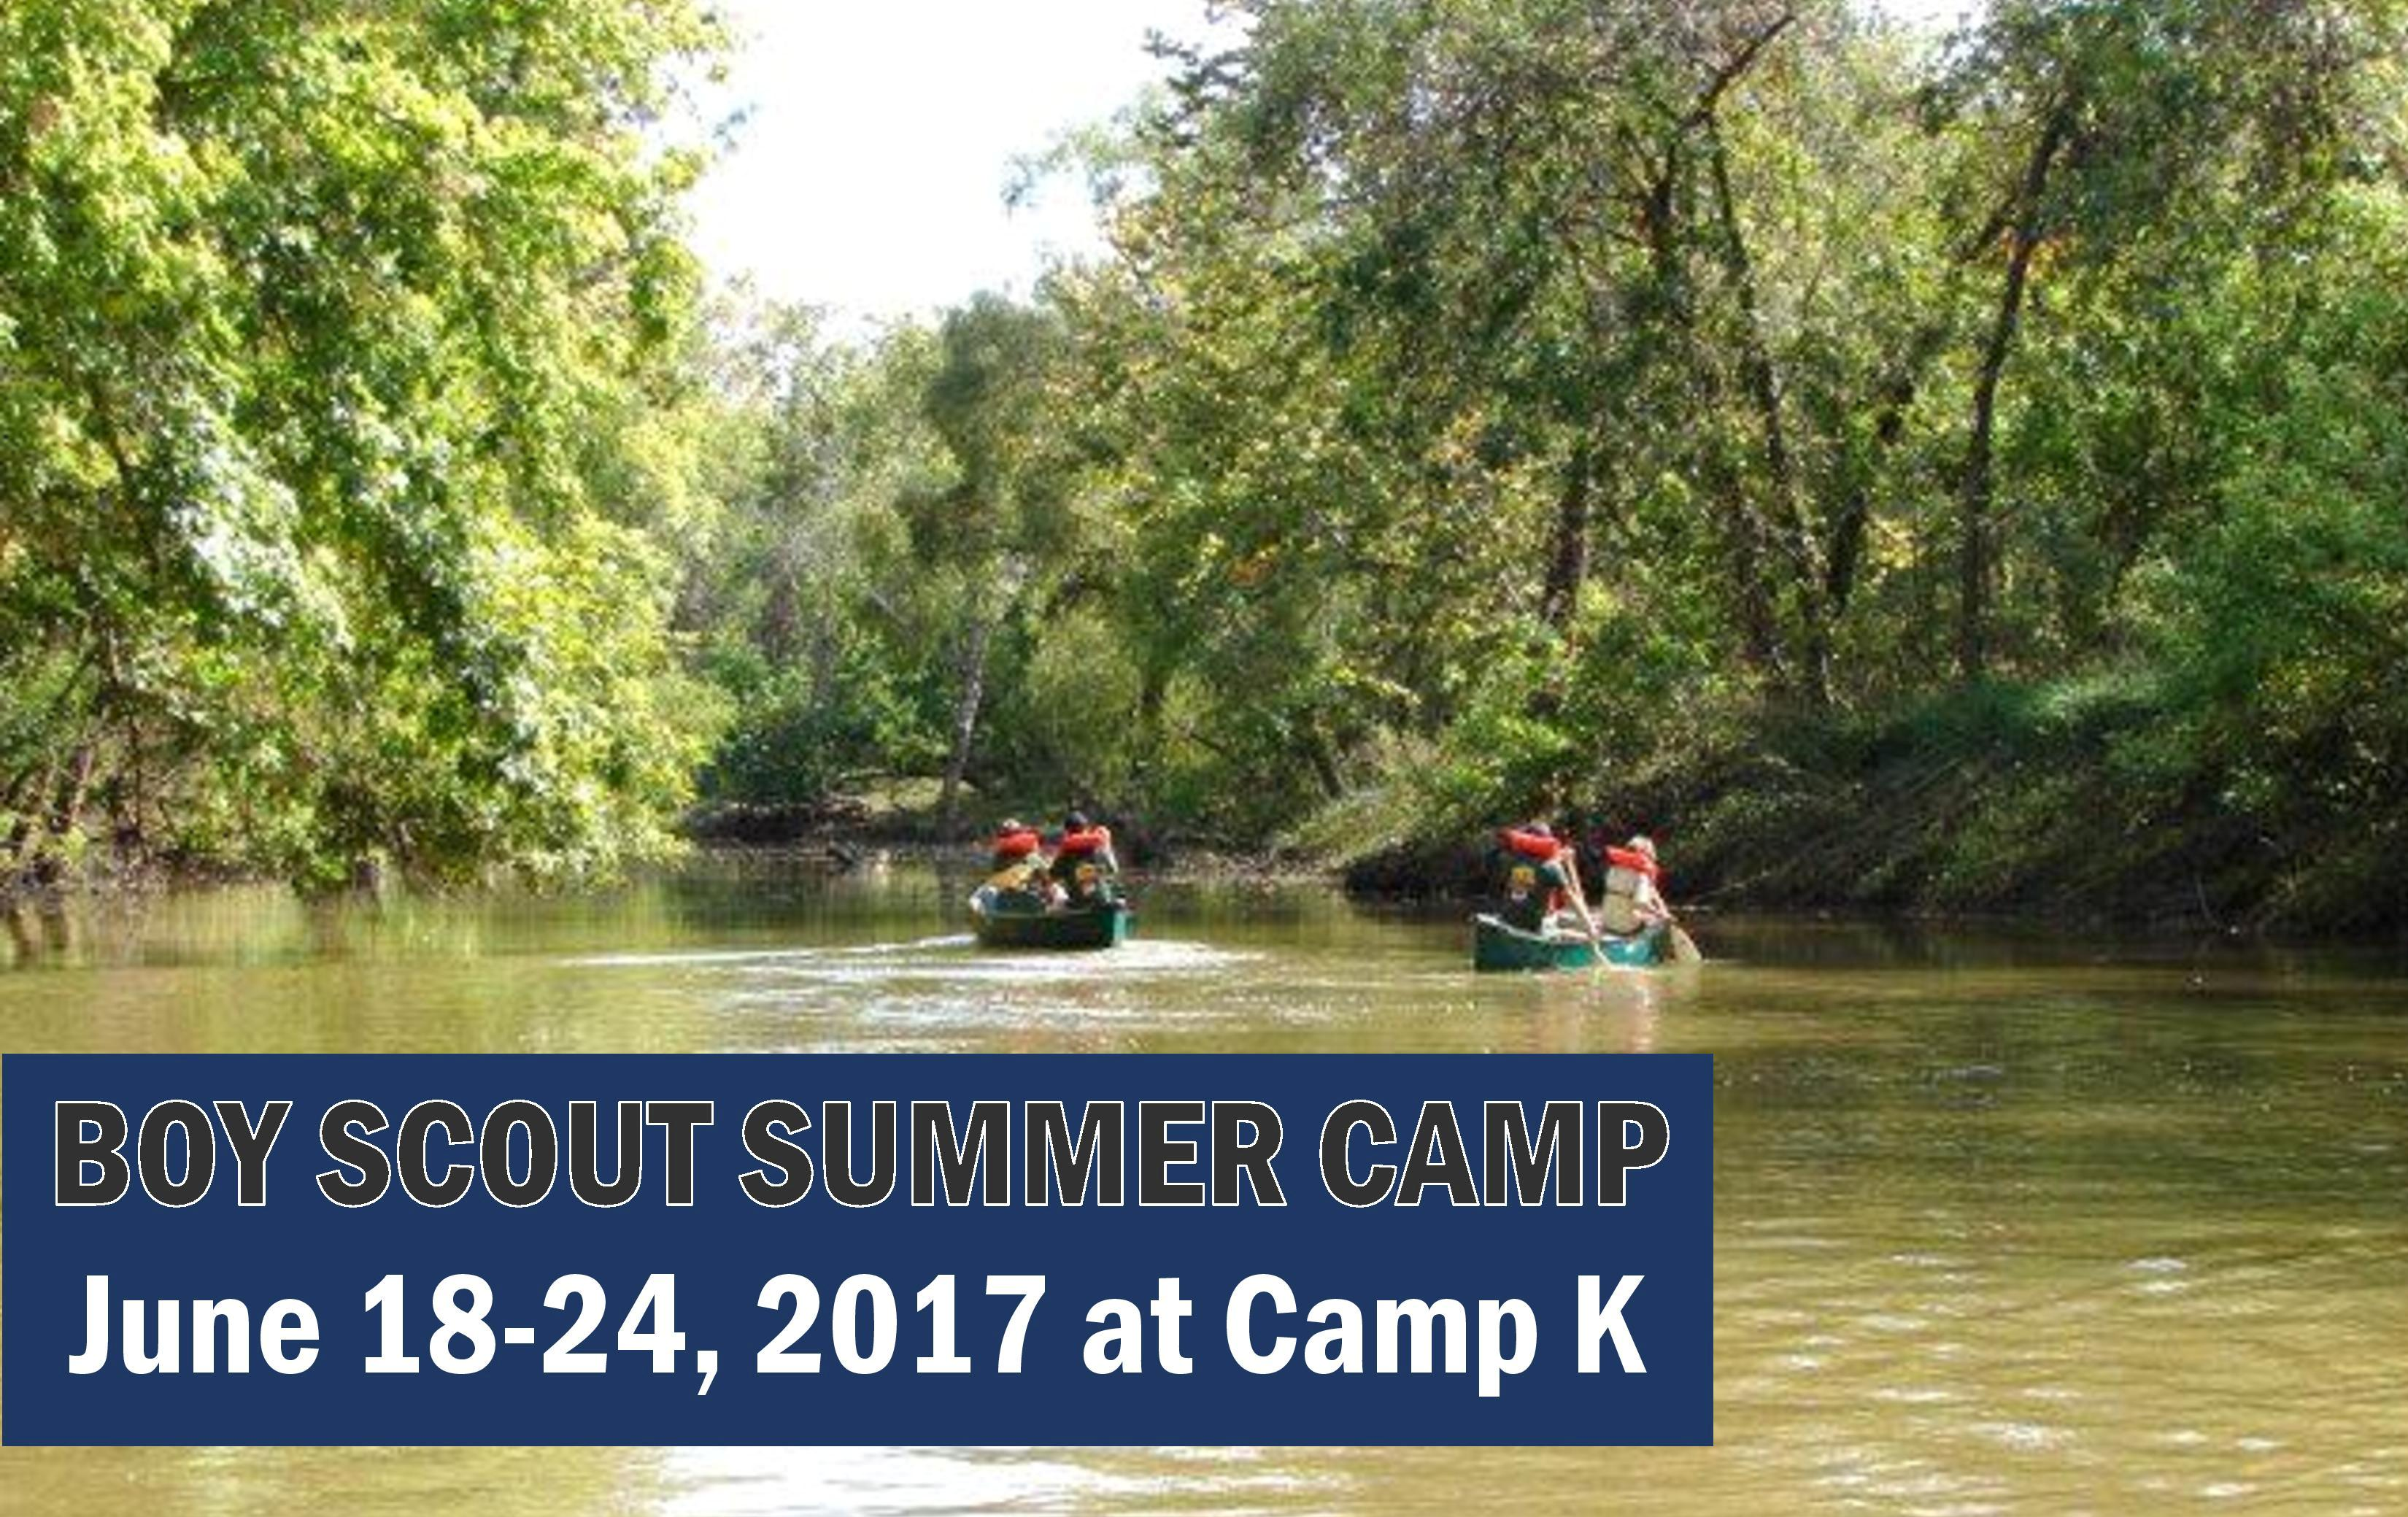 Camp K Summer Boy Scout Camp